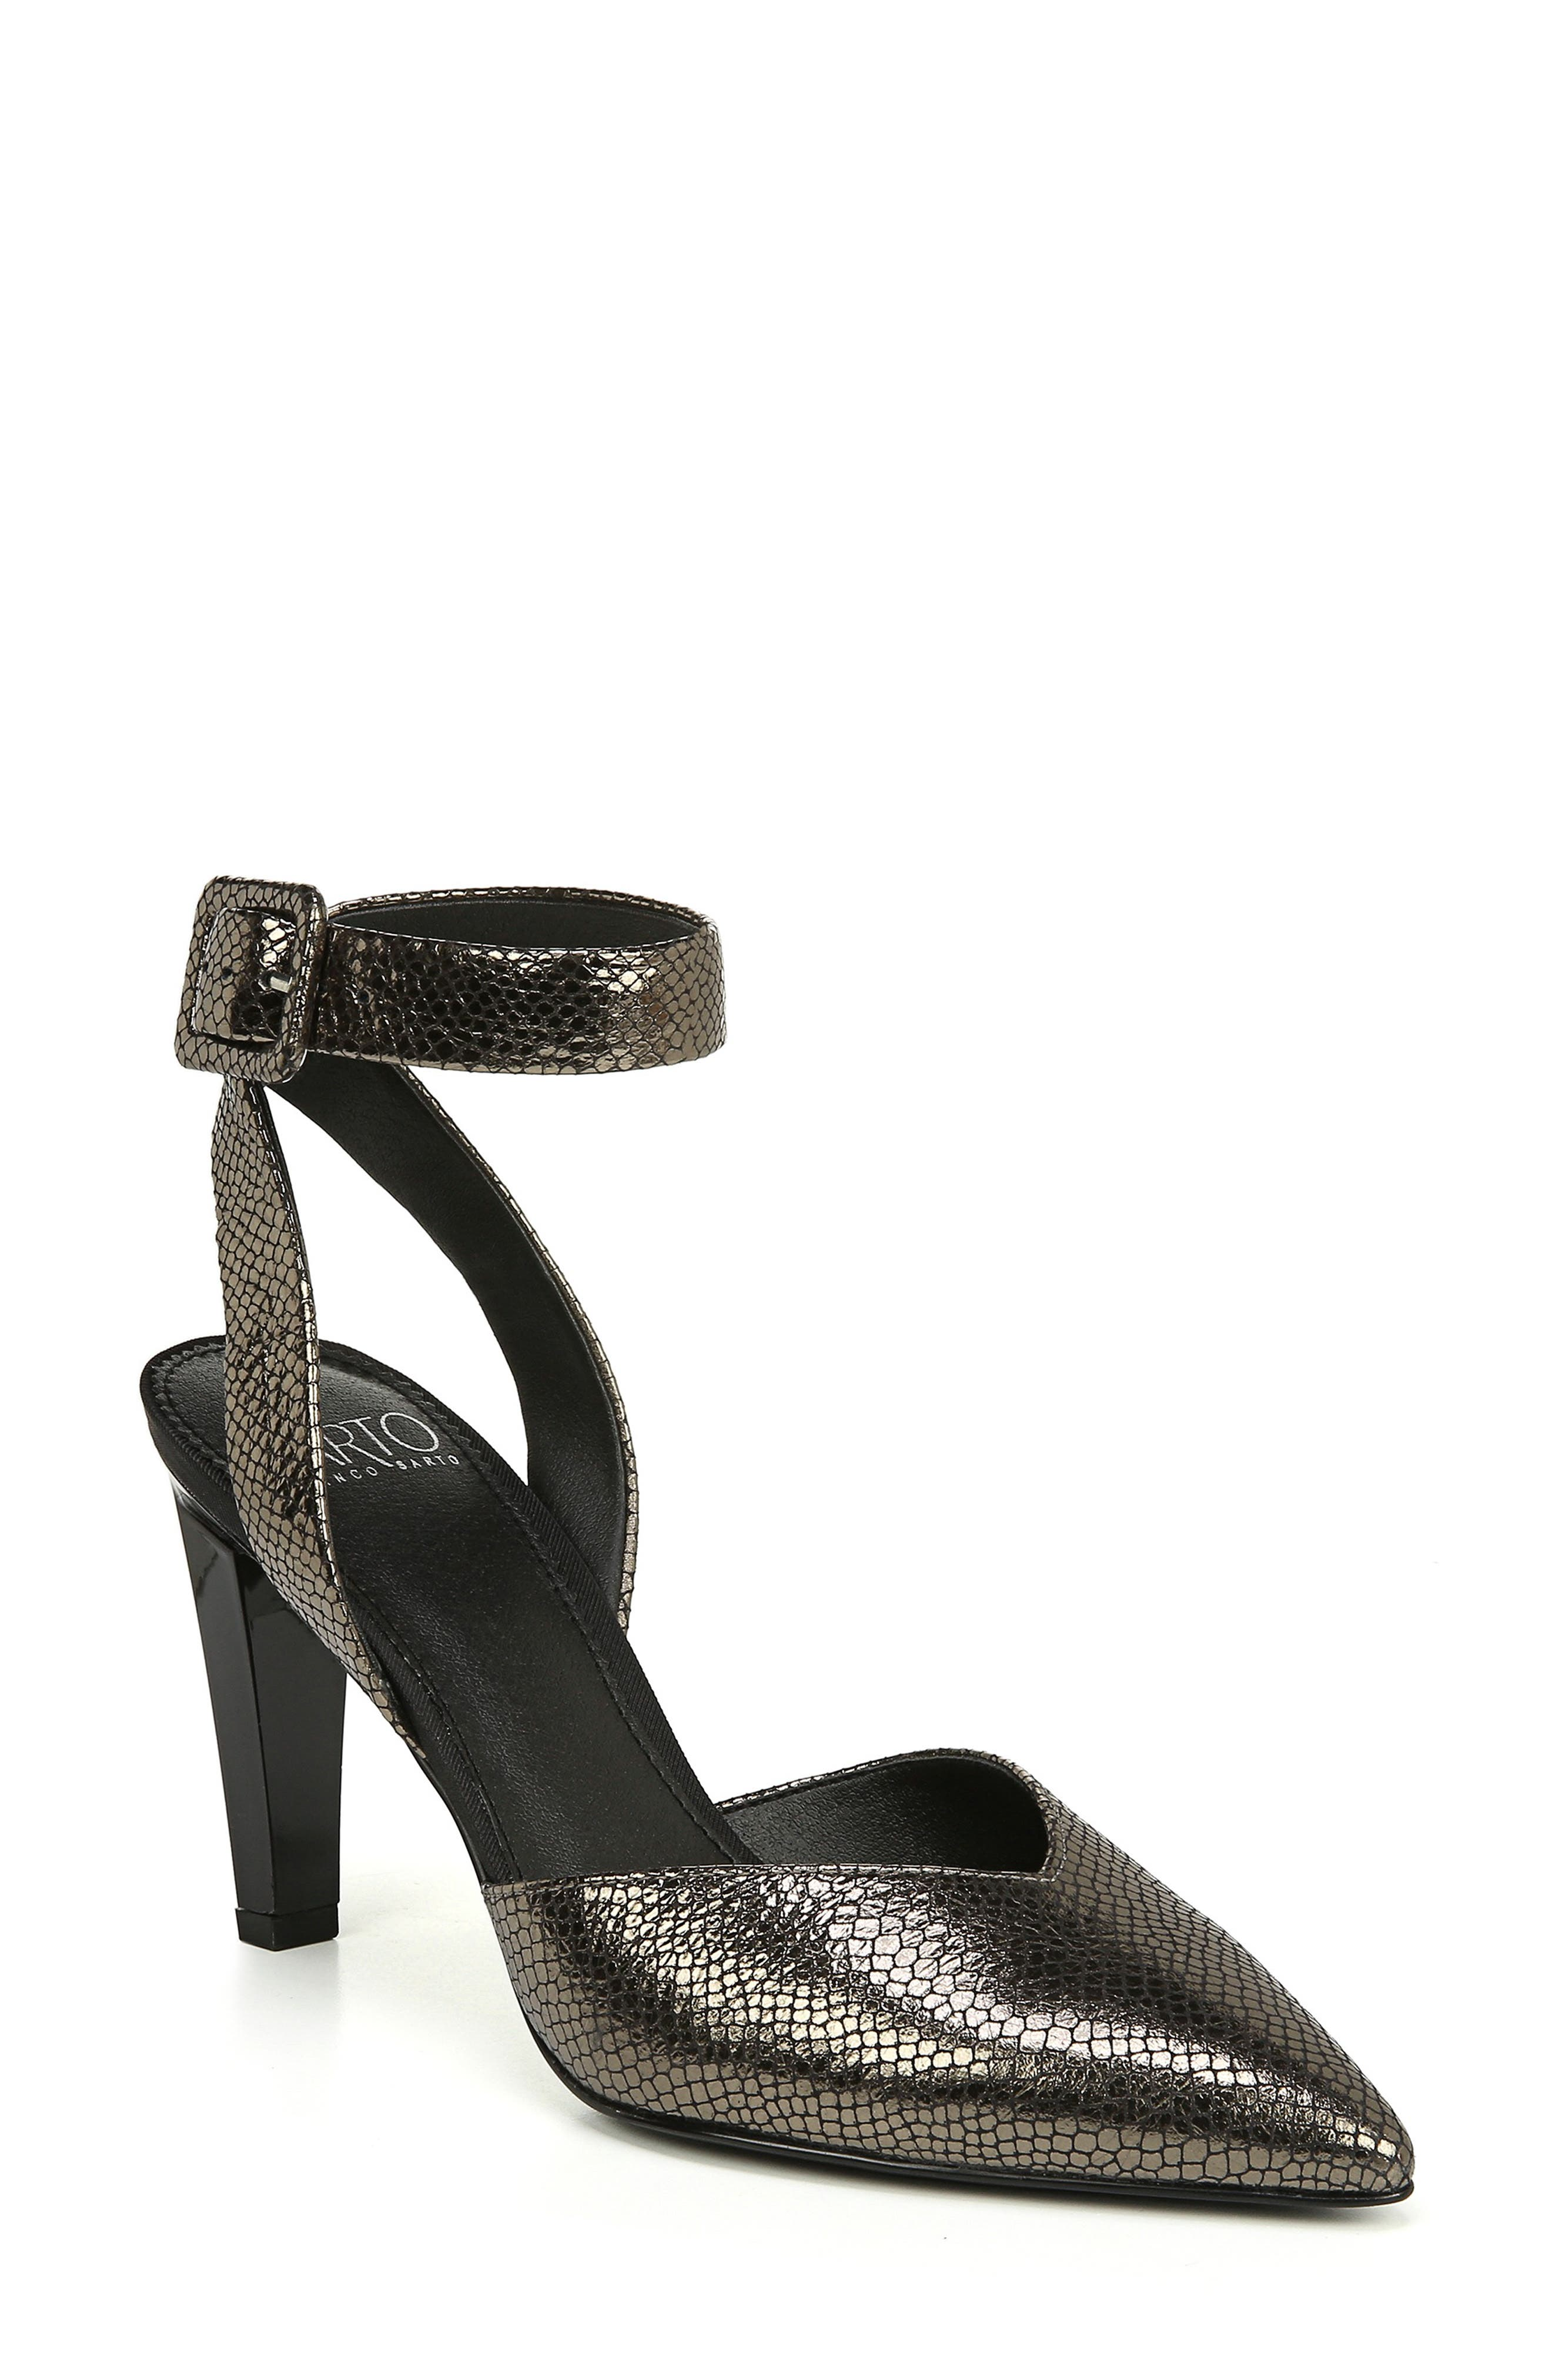 Santi Ankle Strap Pump,                             Main thumbnail 1, color,                             PEWTER LEATHER